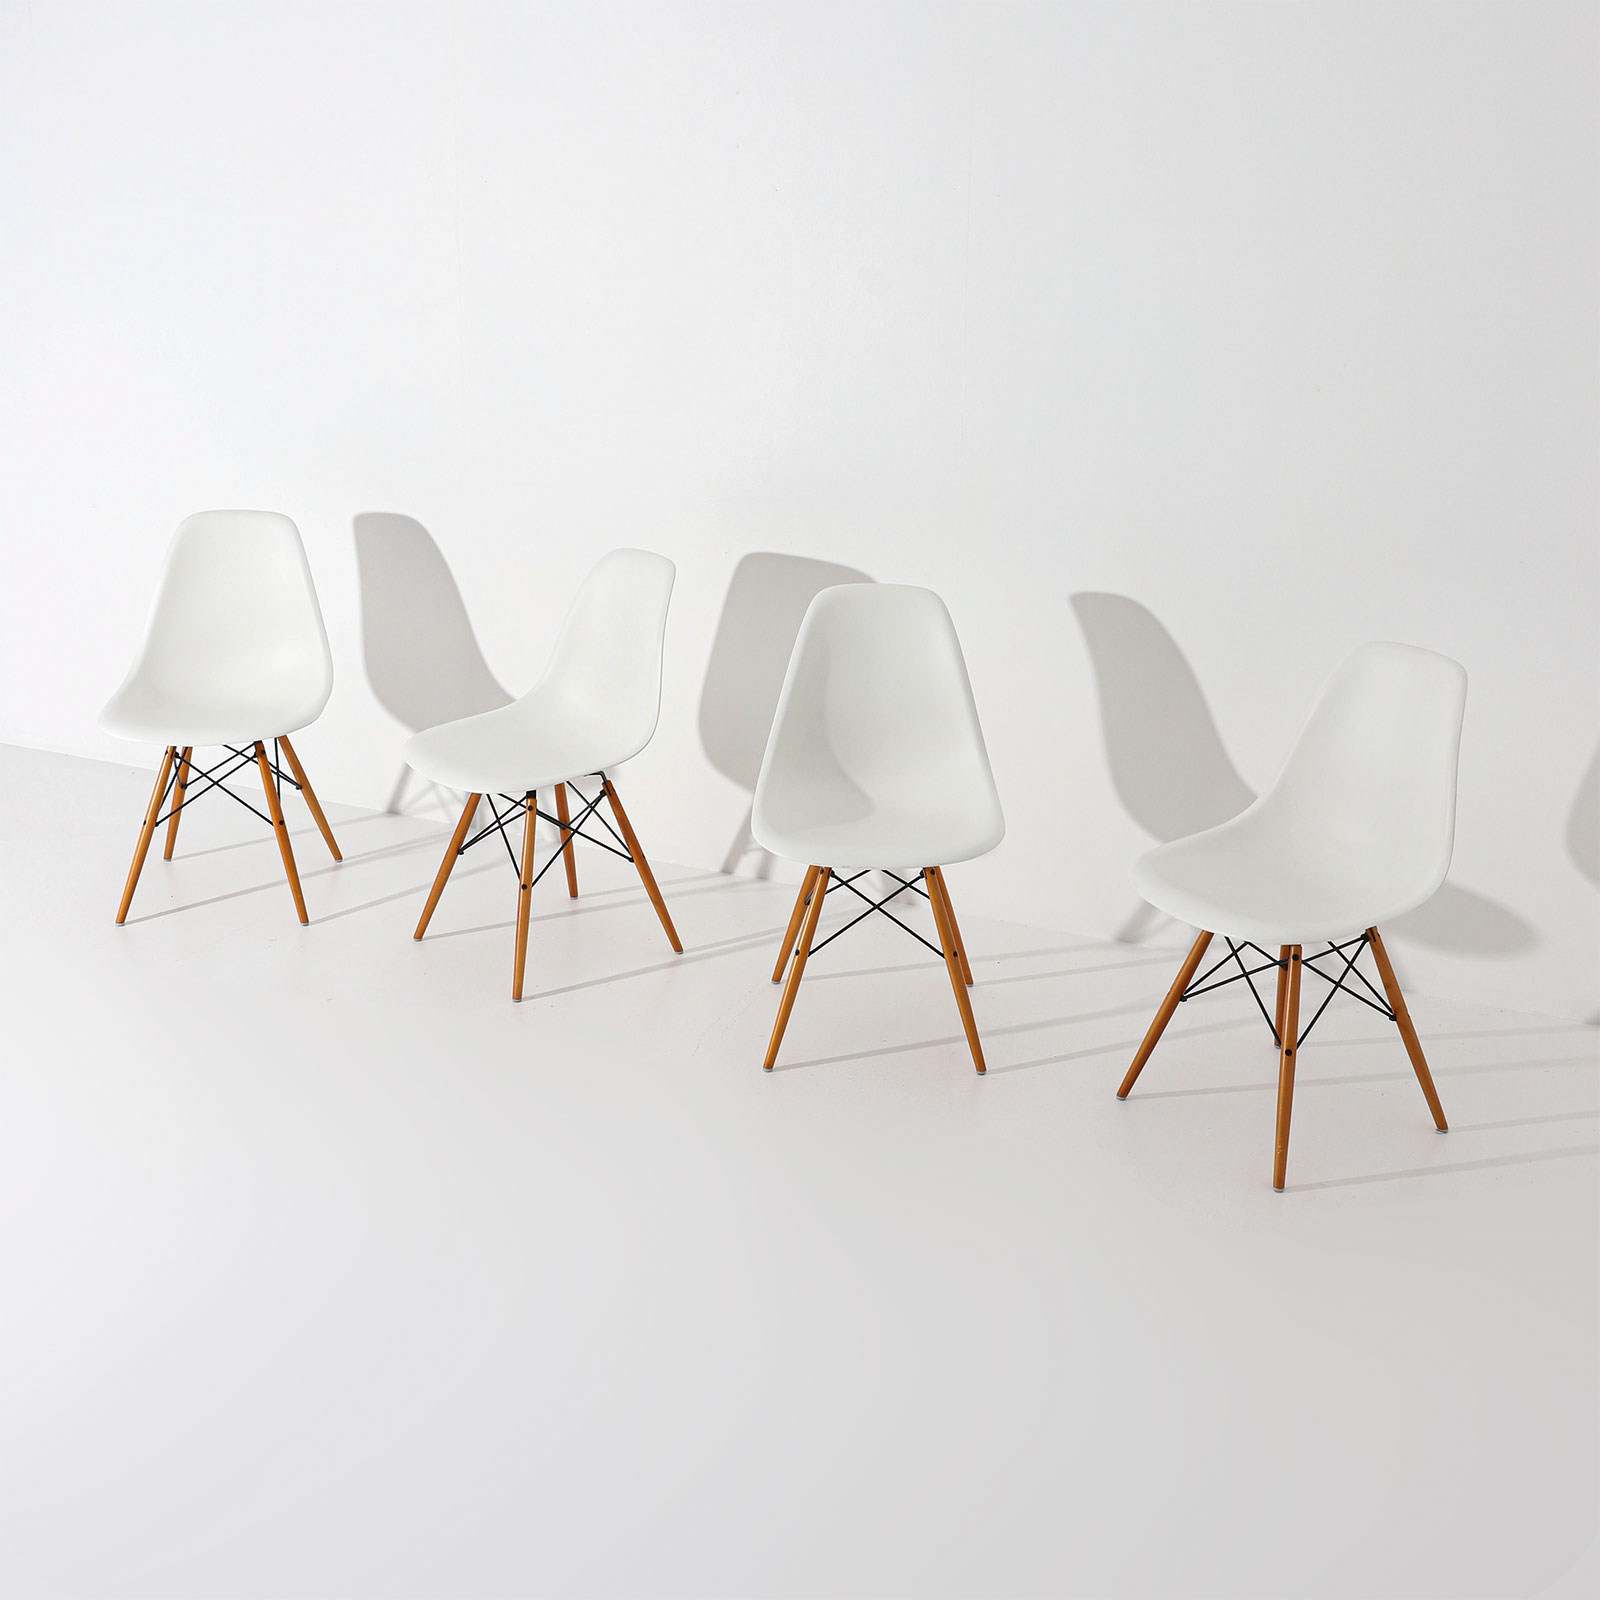 Eames DSW Vitra chairs